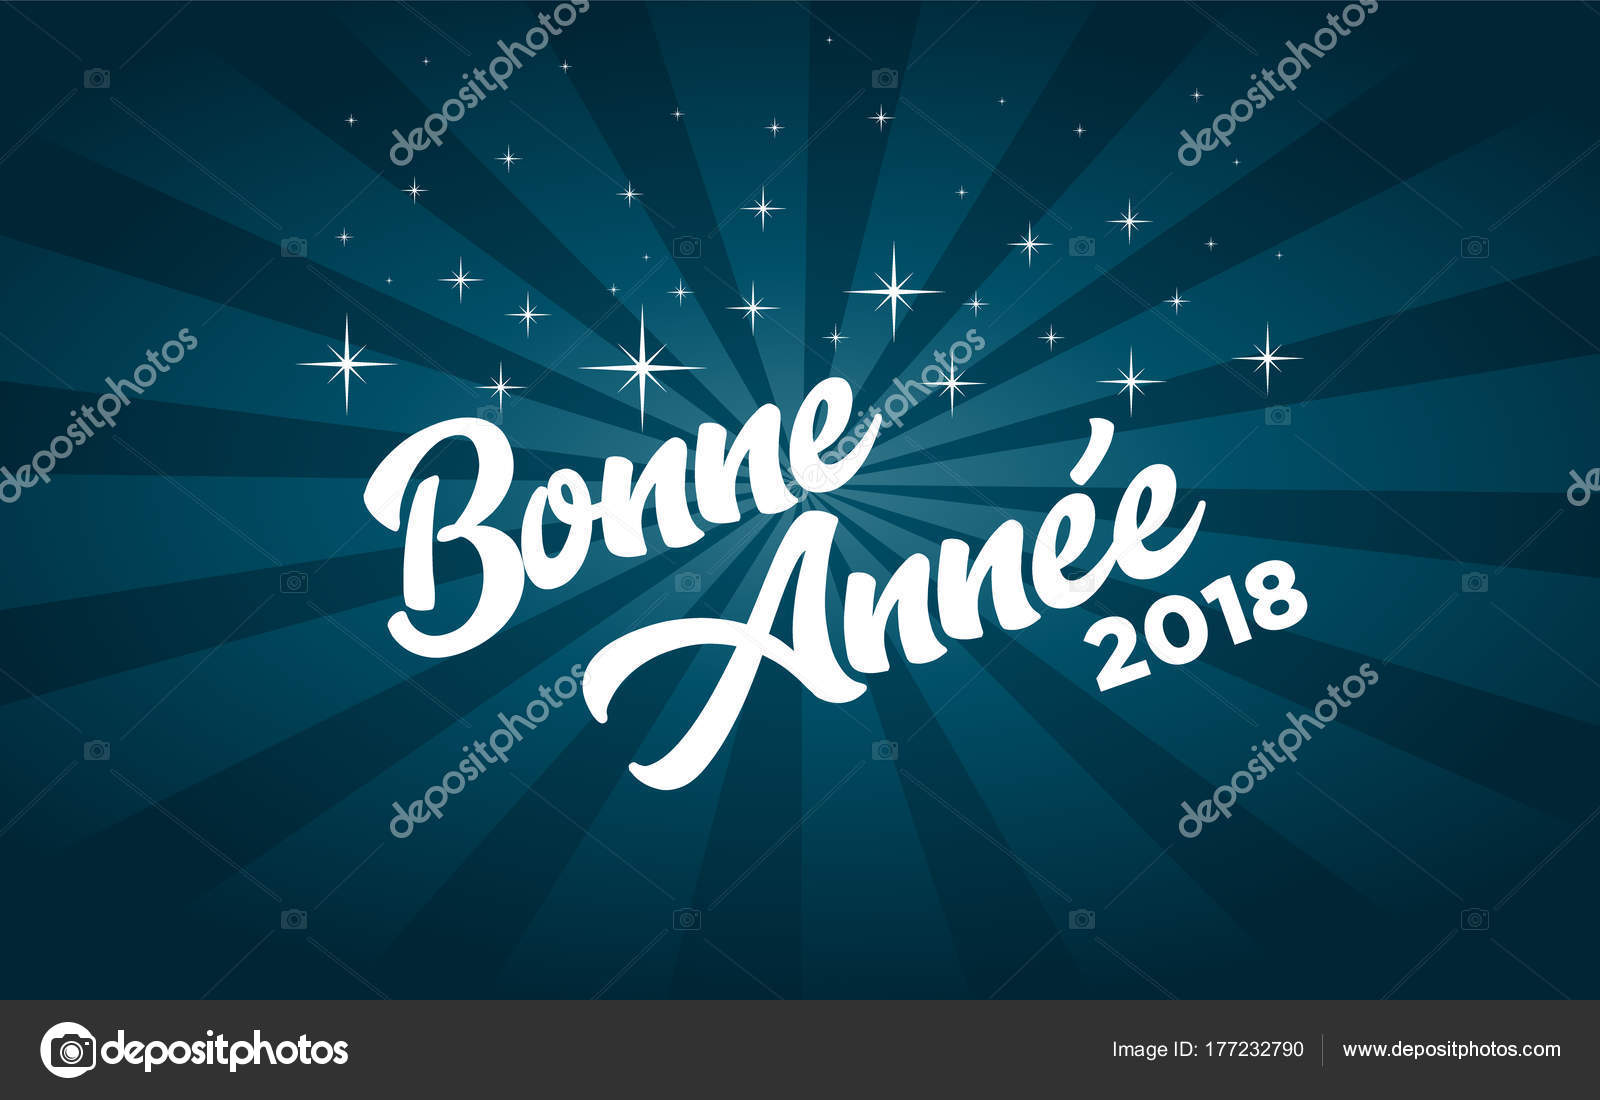 french happy new year 2018 greeting card stock vector